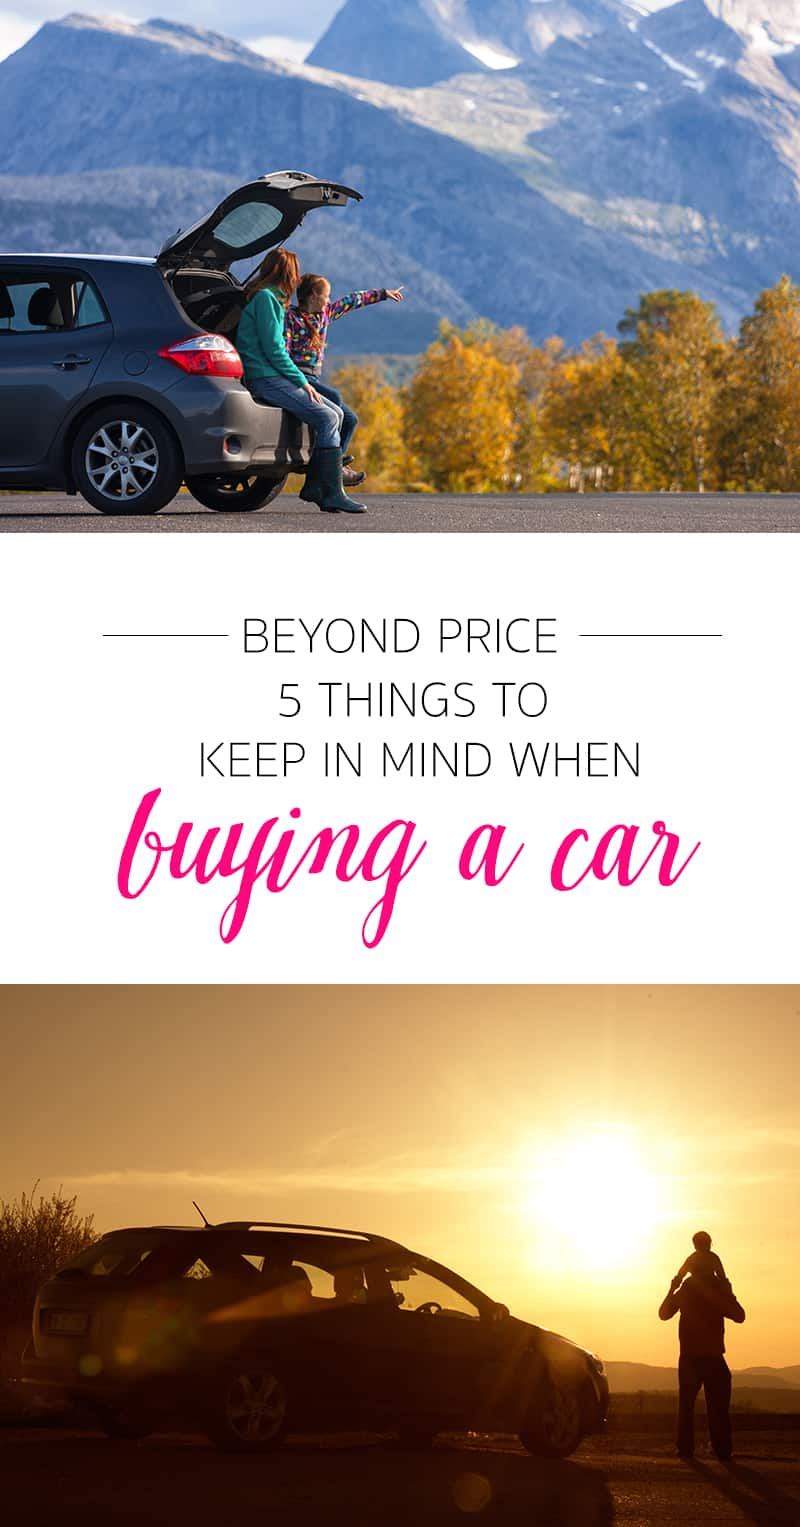 Beyond Price: 5 Things to Keep in Mind When Buying a Car for Your Family *Whether you're buying new or used, this is a great read